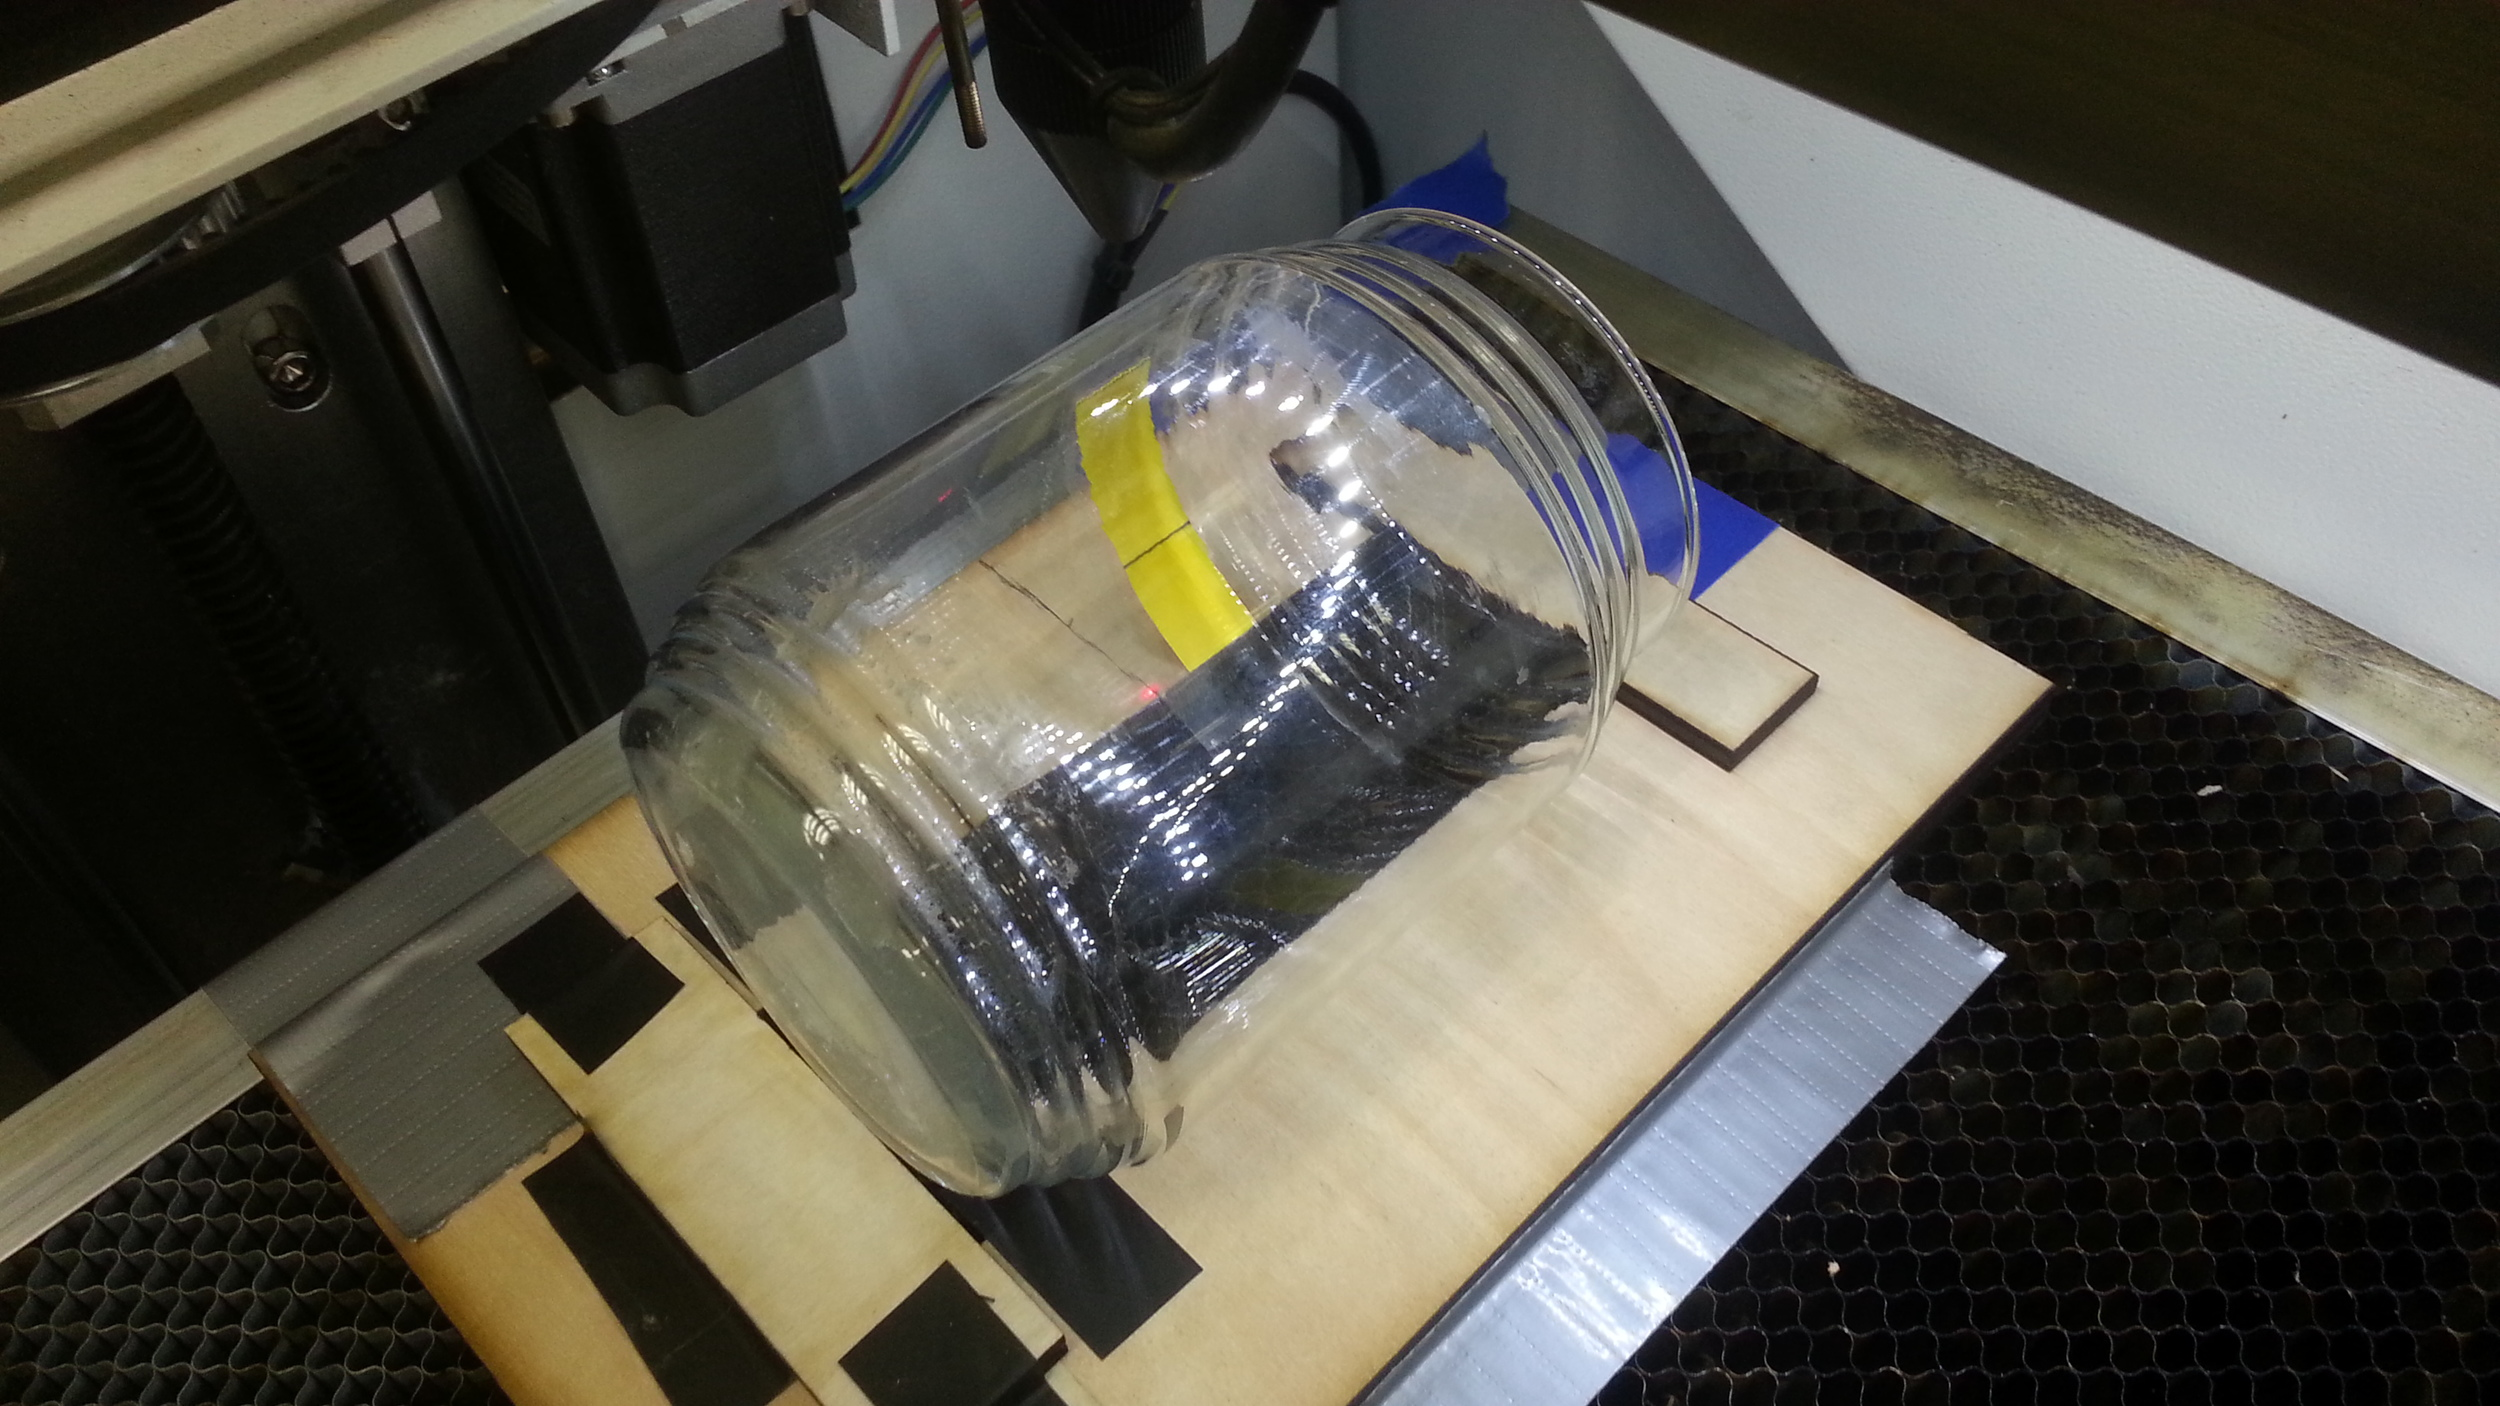 Process for using a laser cutter to etch glass jars for a wedding at Edgewater Workbench in Chicago